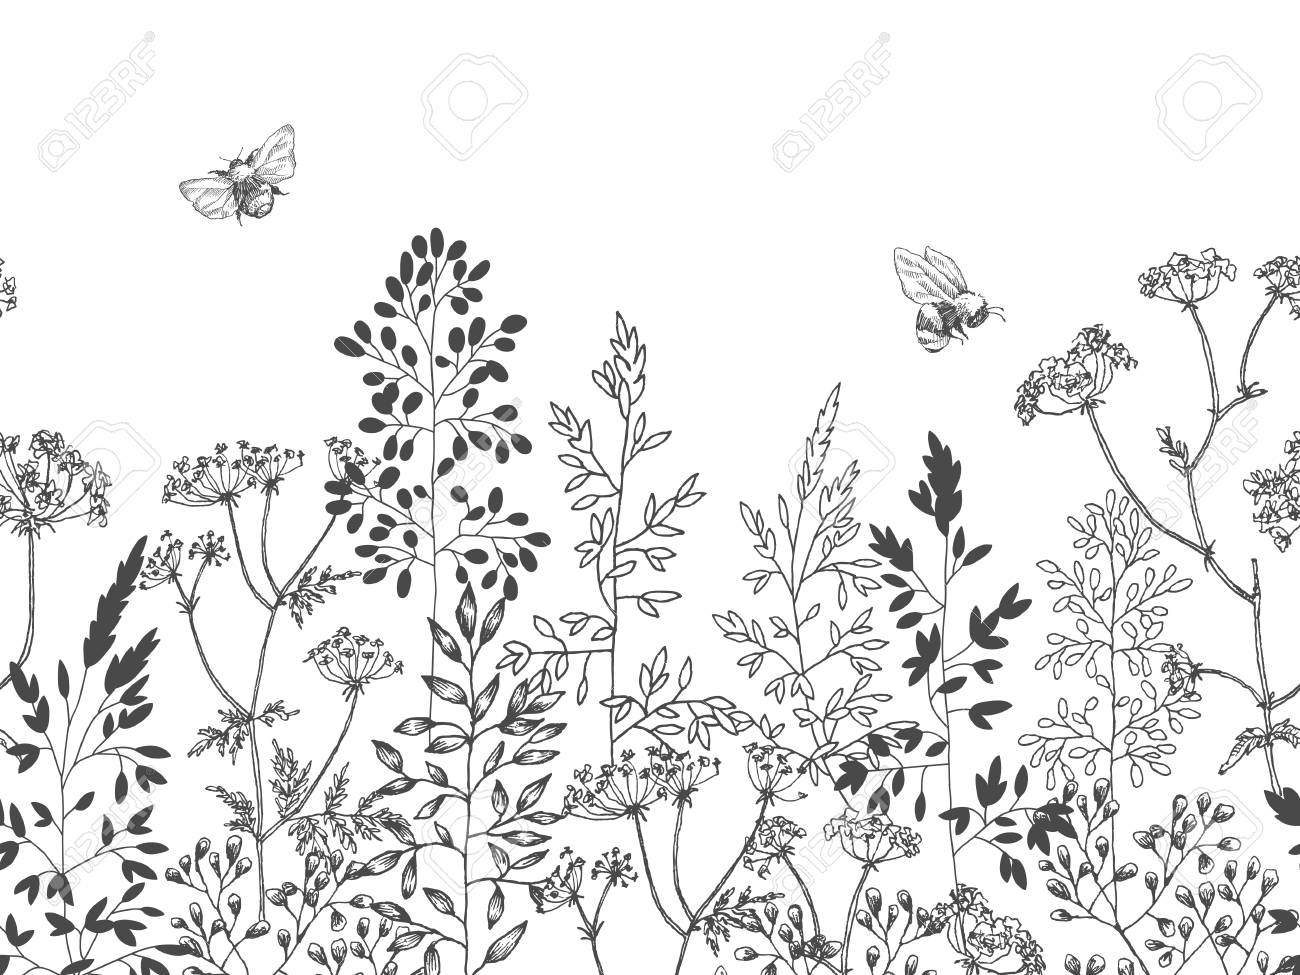 Blooming flower. Set collection. Hand drawn botanical blossom branches on white background. Engraved illustration. - 125867379